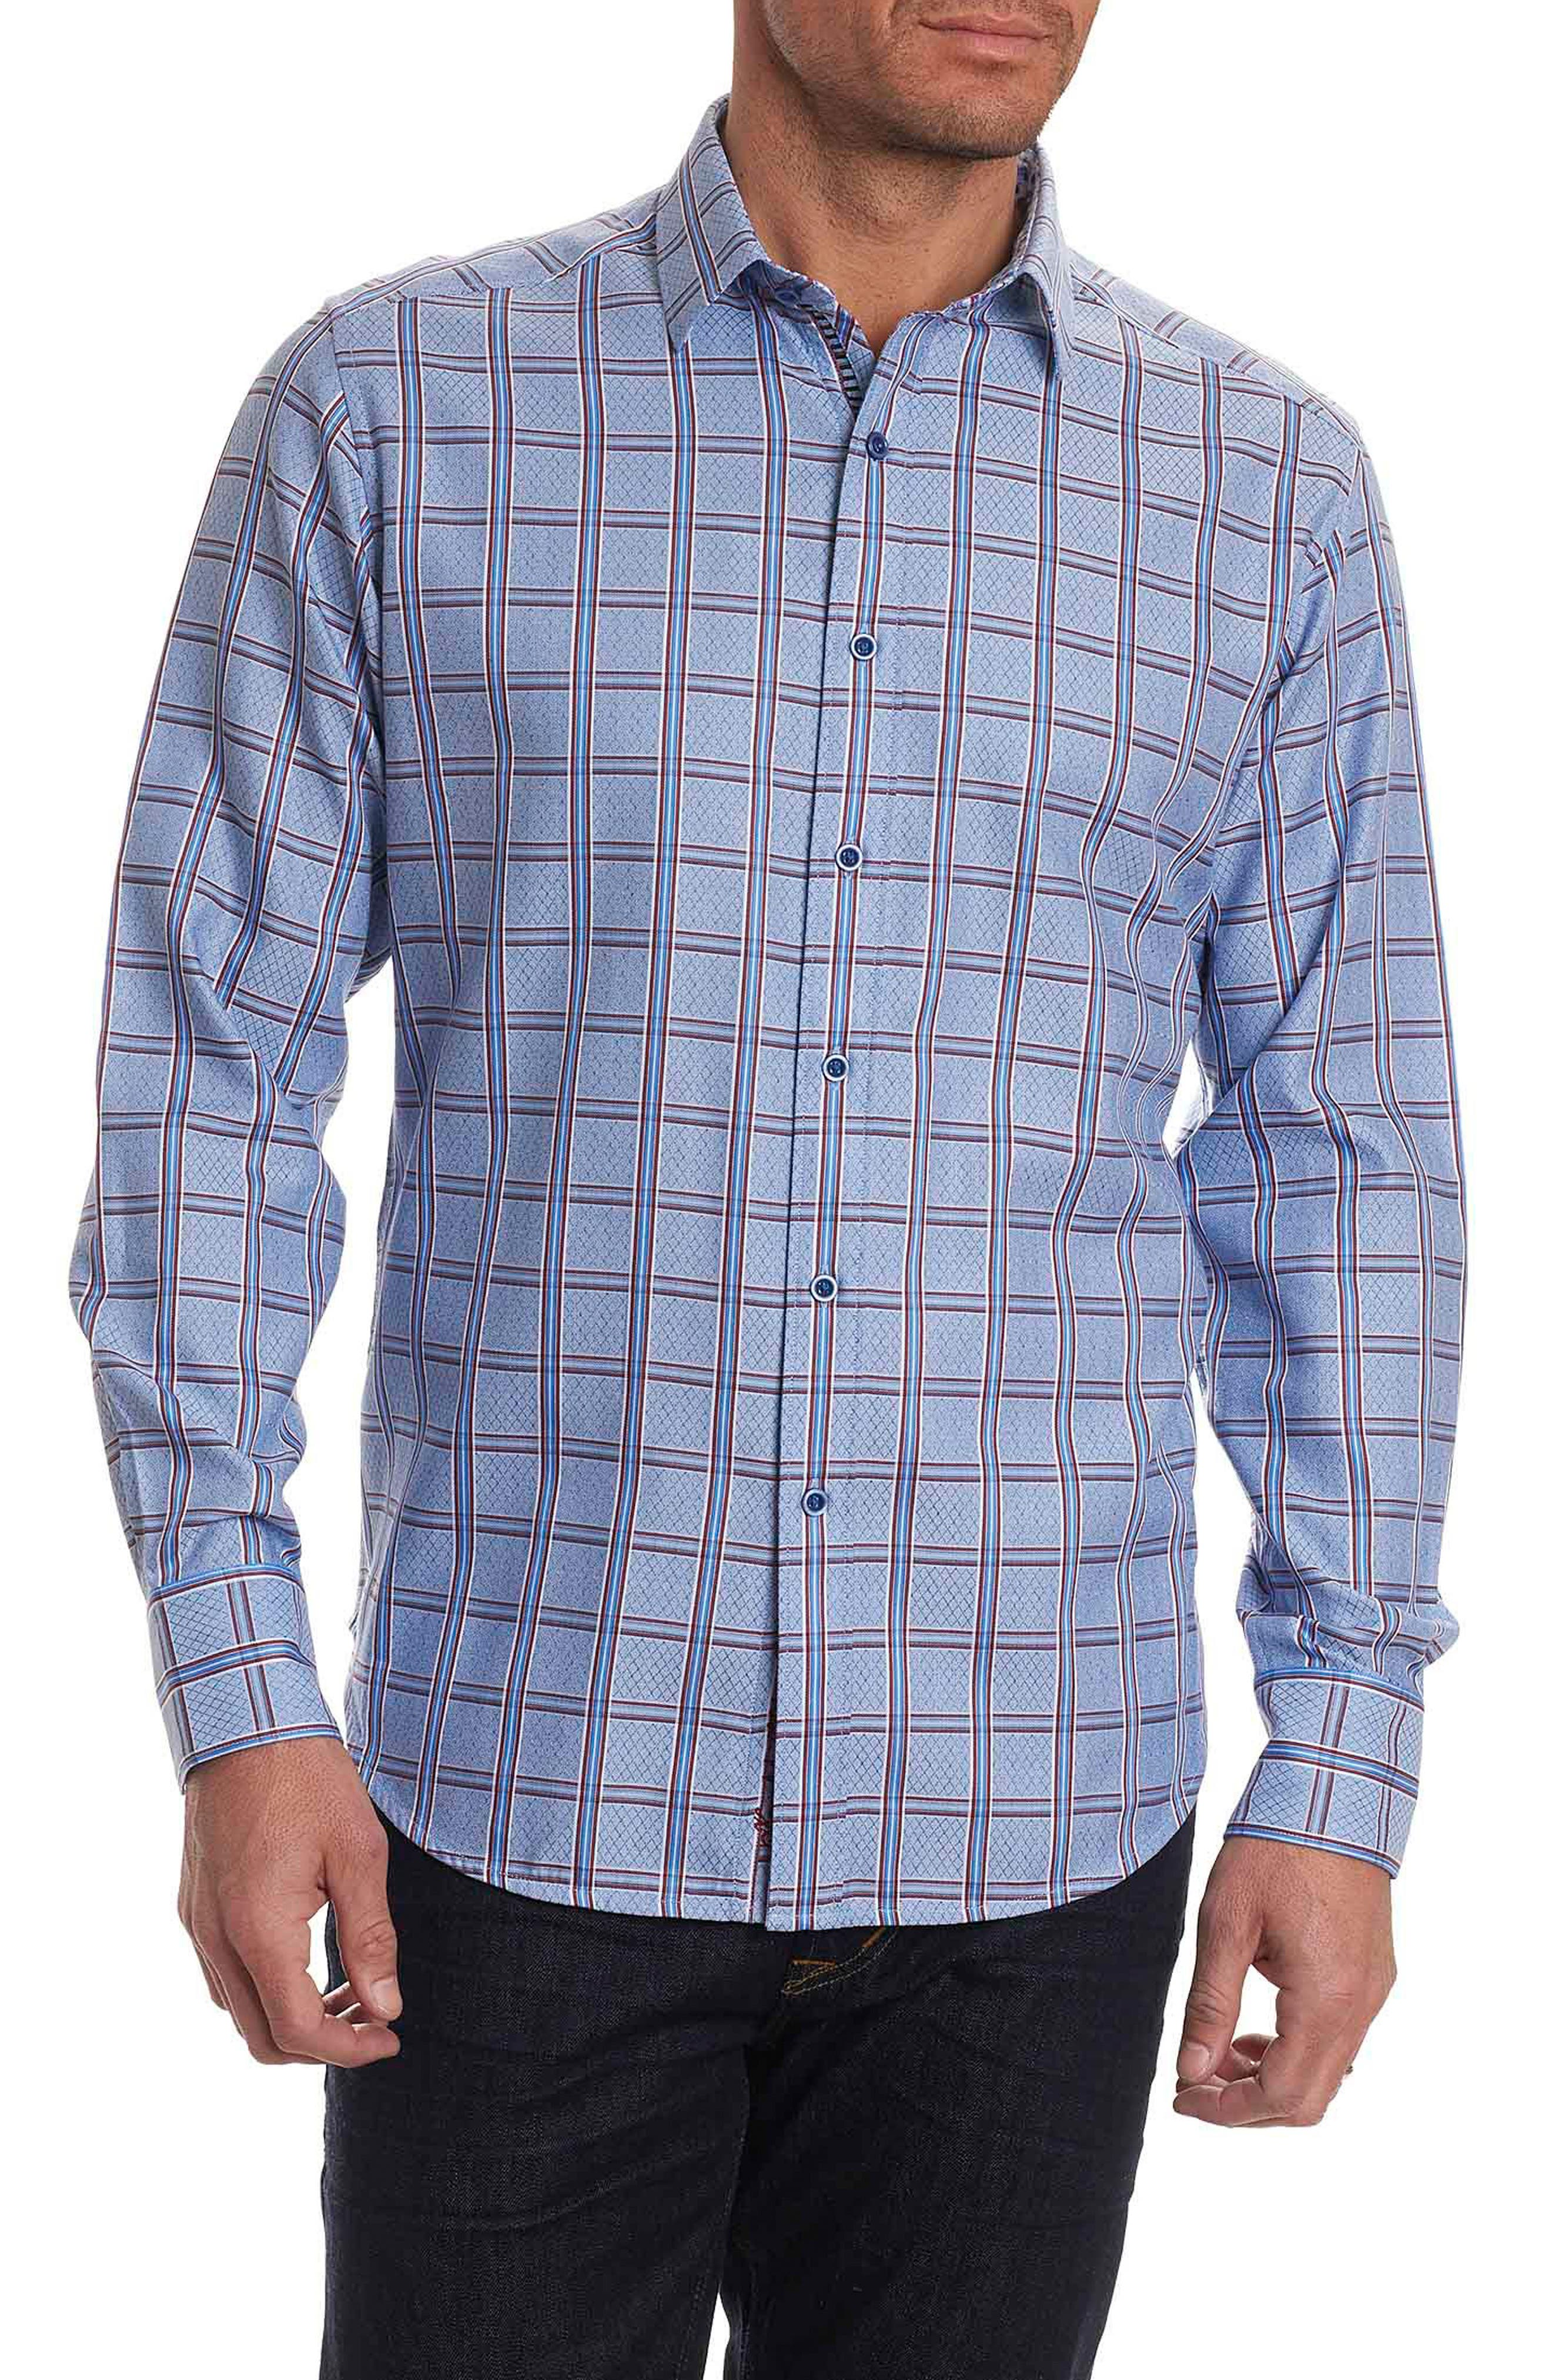 Jerold Print Sport Shirt,                             Main thumbnail 1, color,                             400